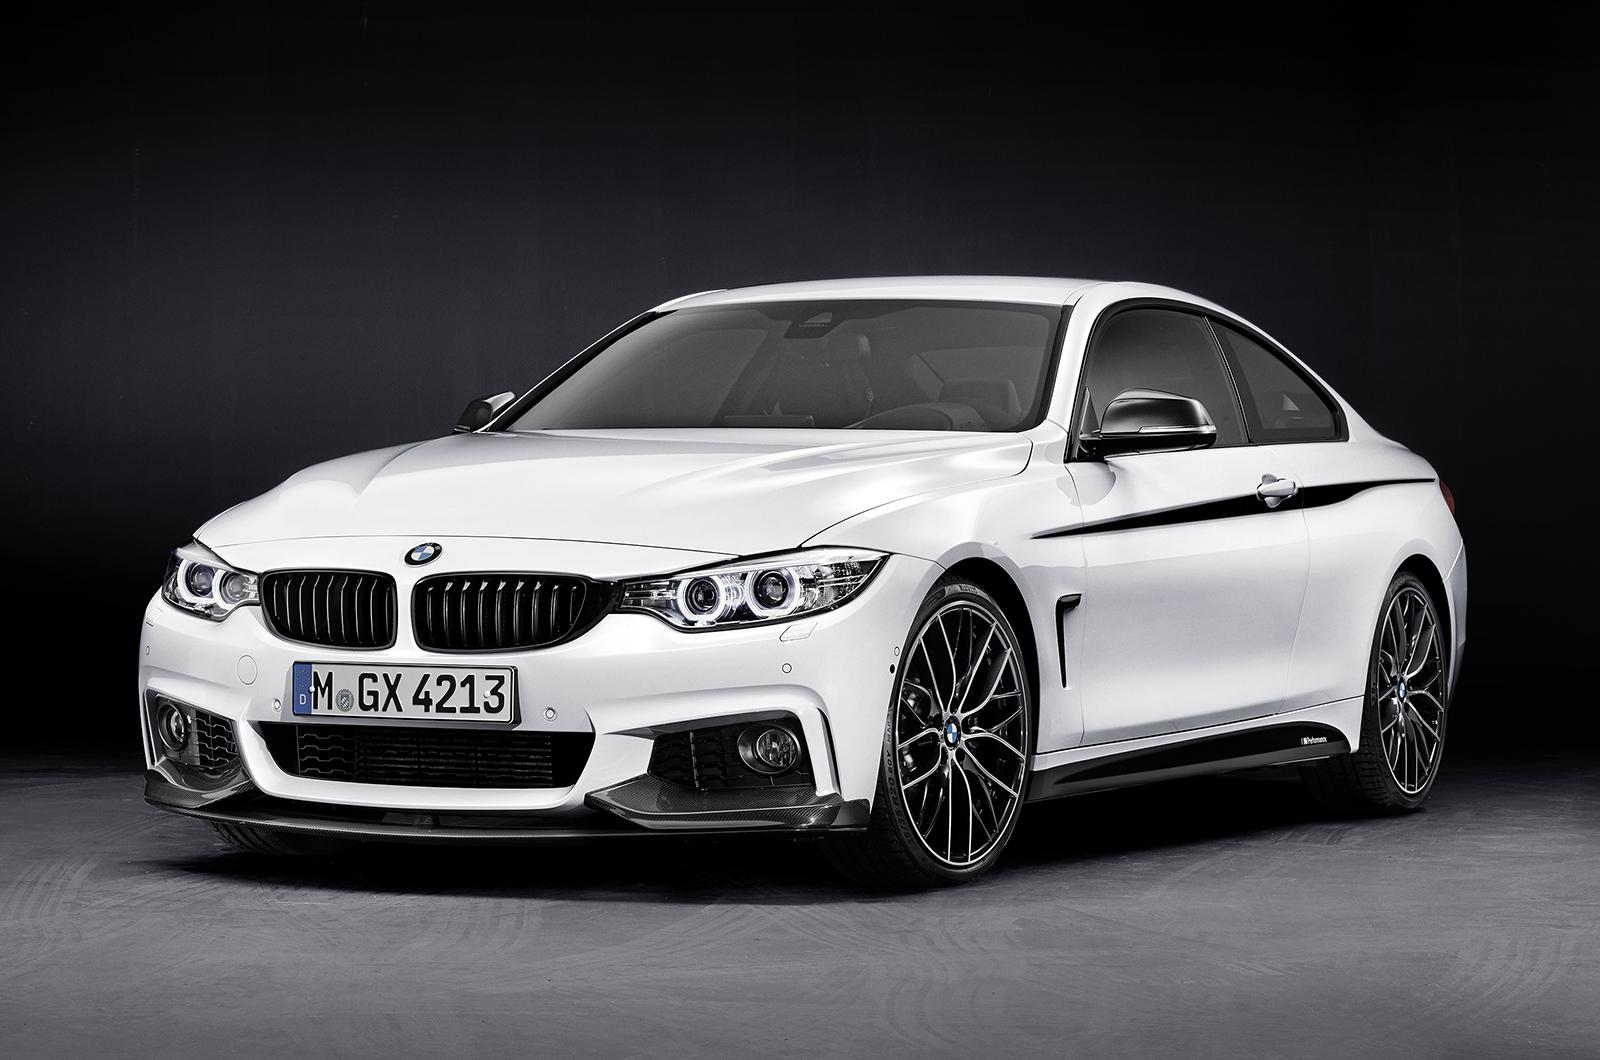 ... 149 kb jpeg bmw 4 series coupe 467 x 309 18 kb jpeg 2014 bmw 4 series